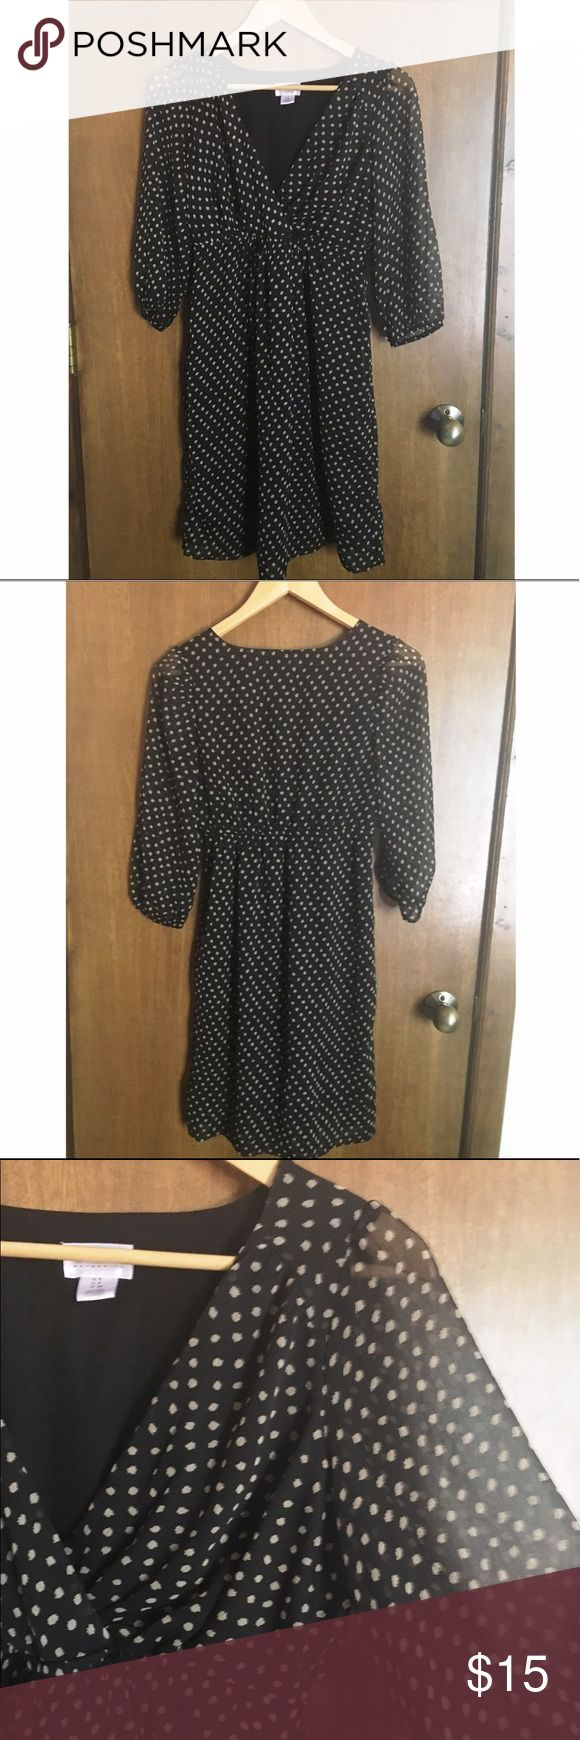 Motherhood Maternity Dress Worn once, perfect condition! Black and cream polka dot maternity dress, 3/4 sheer sleeves, fully lined body and skirt. Includes black ribbon waist tie (not pictured). Motherhood Maternity Dresses